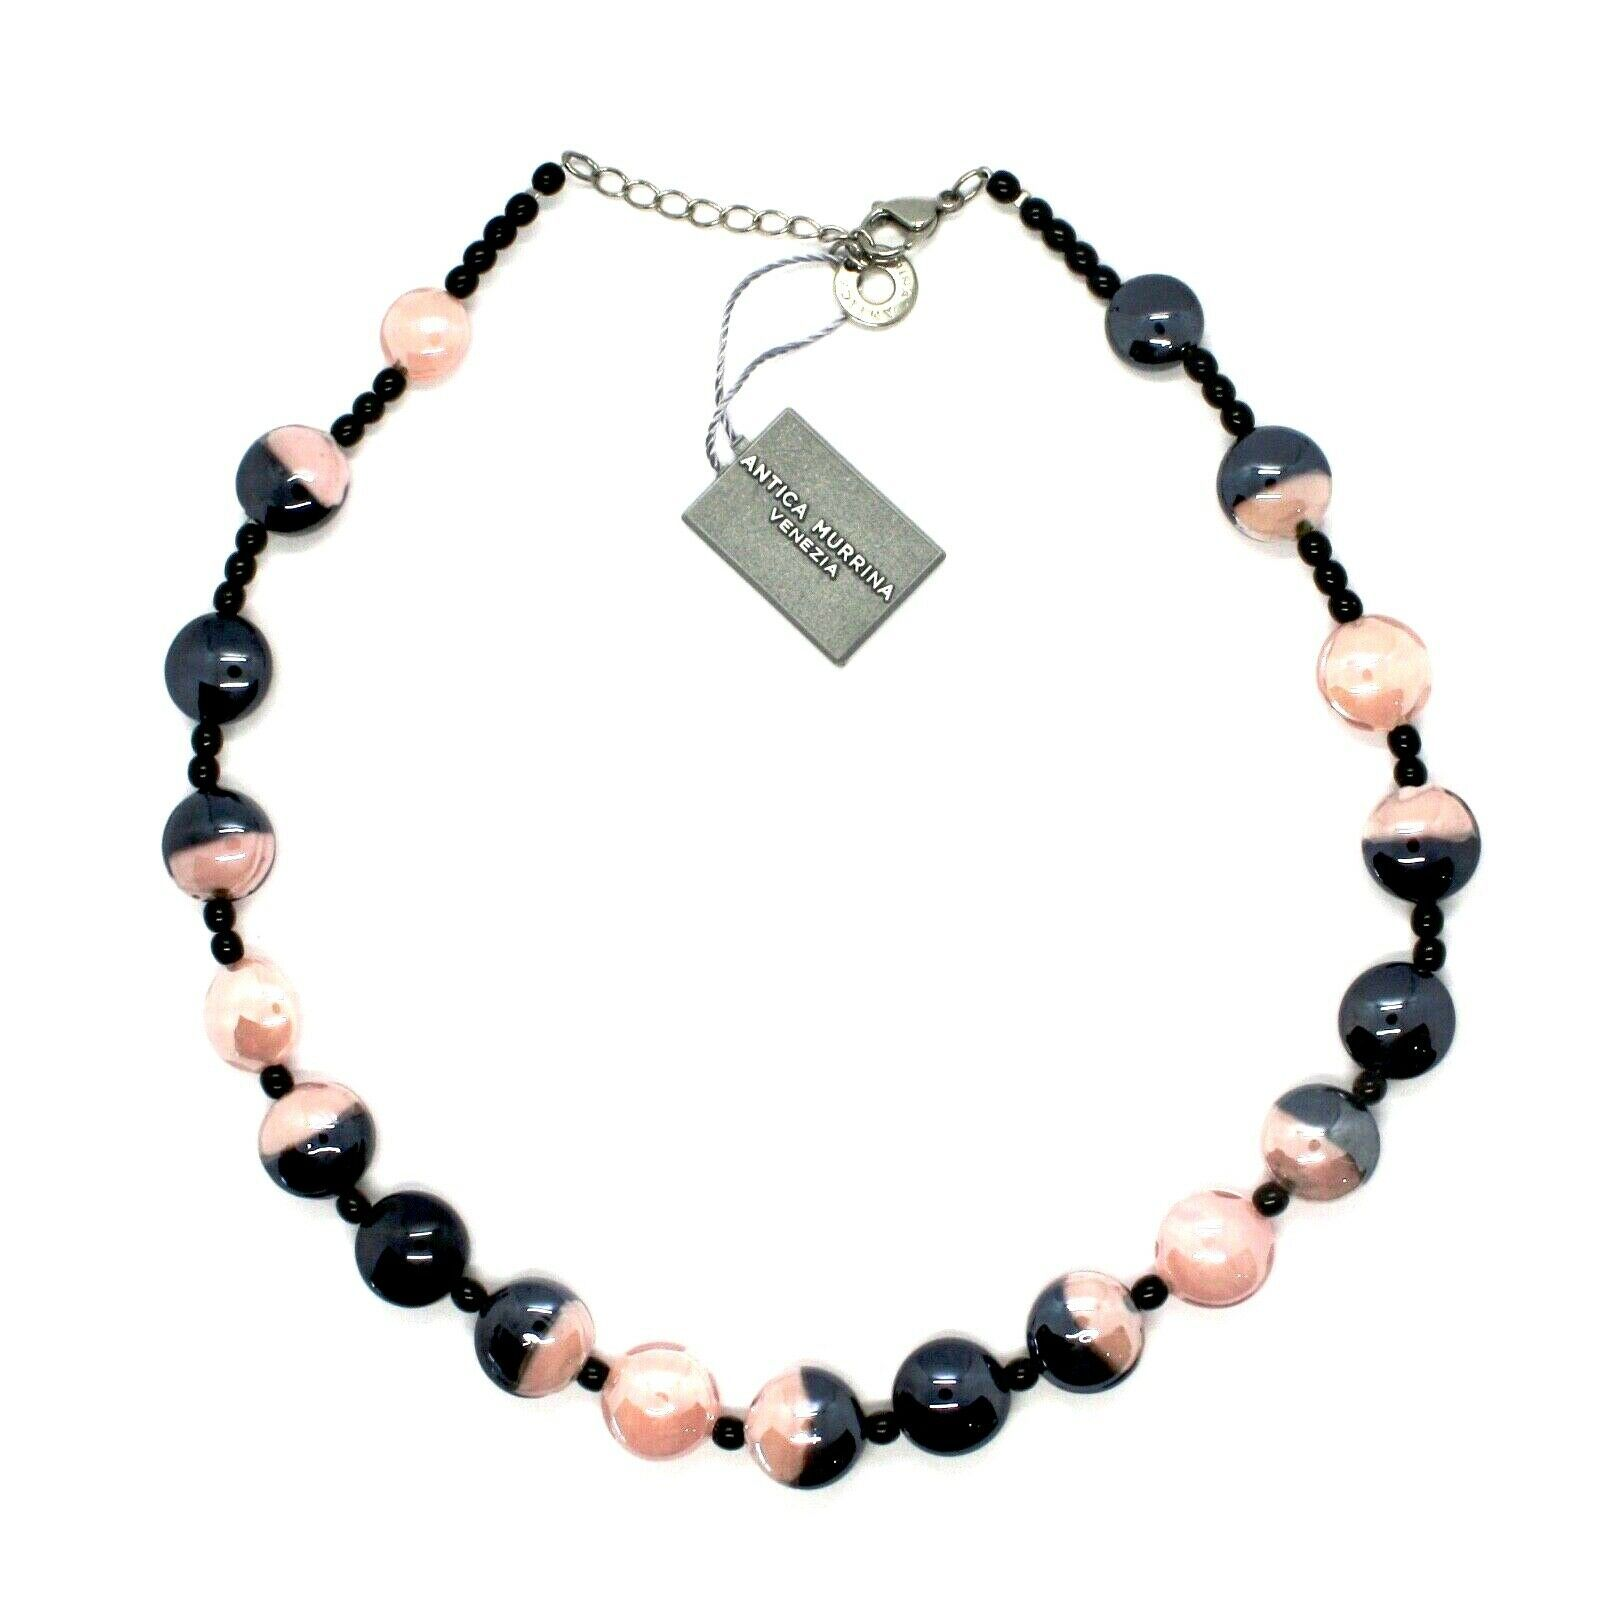 NECKLACE ANTIQUE MURRINA COA39A03 WITH MURANO GLASS ROSE AND BLACK TURTLENECK